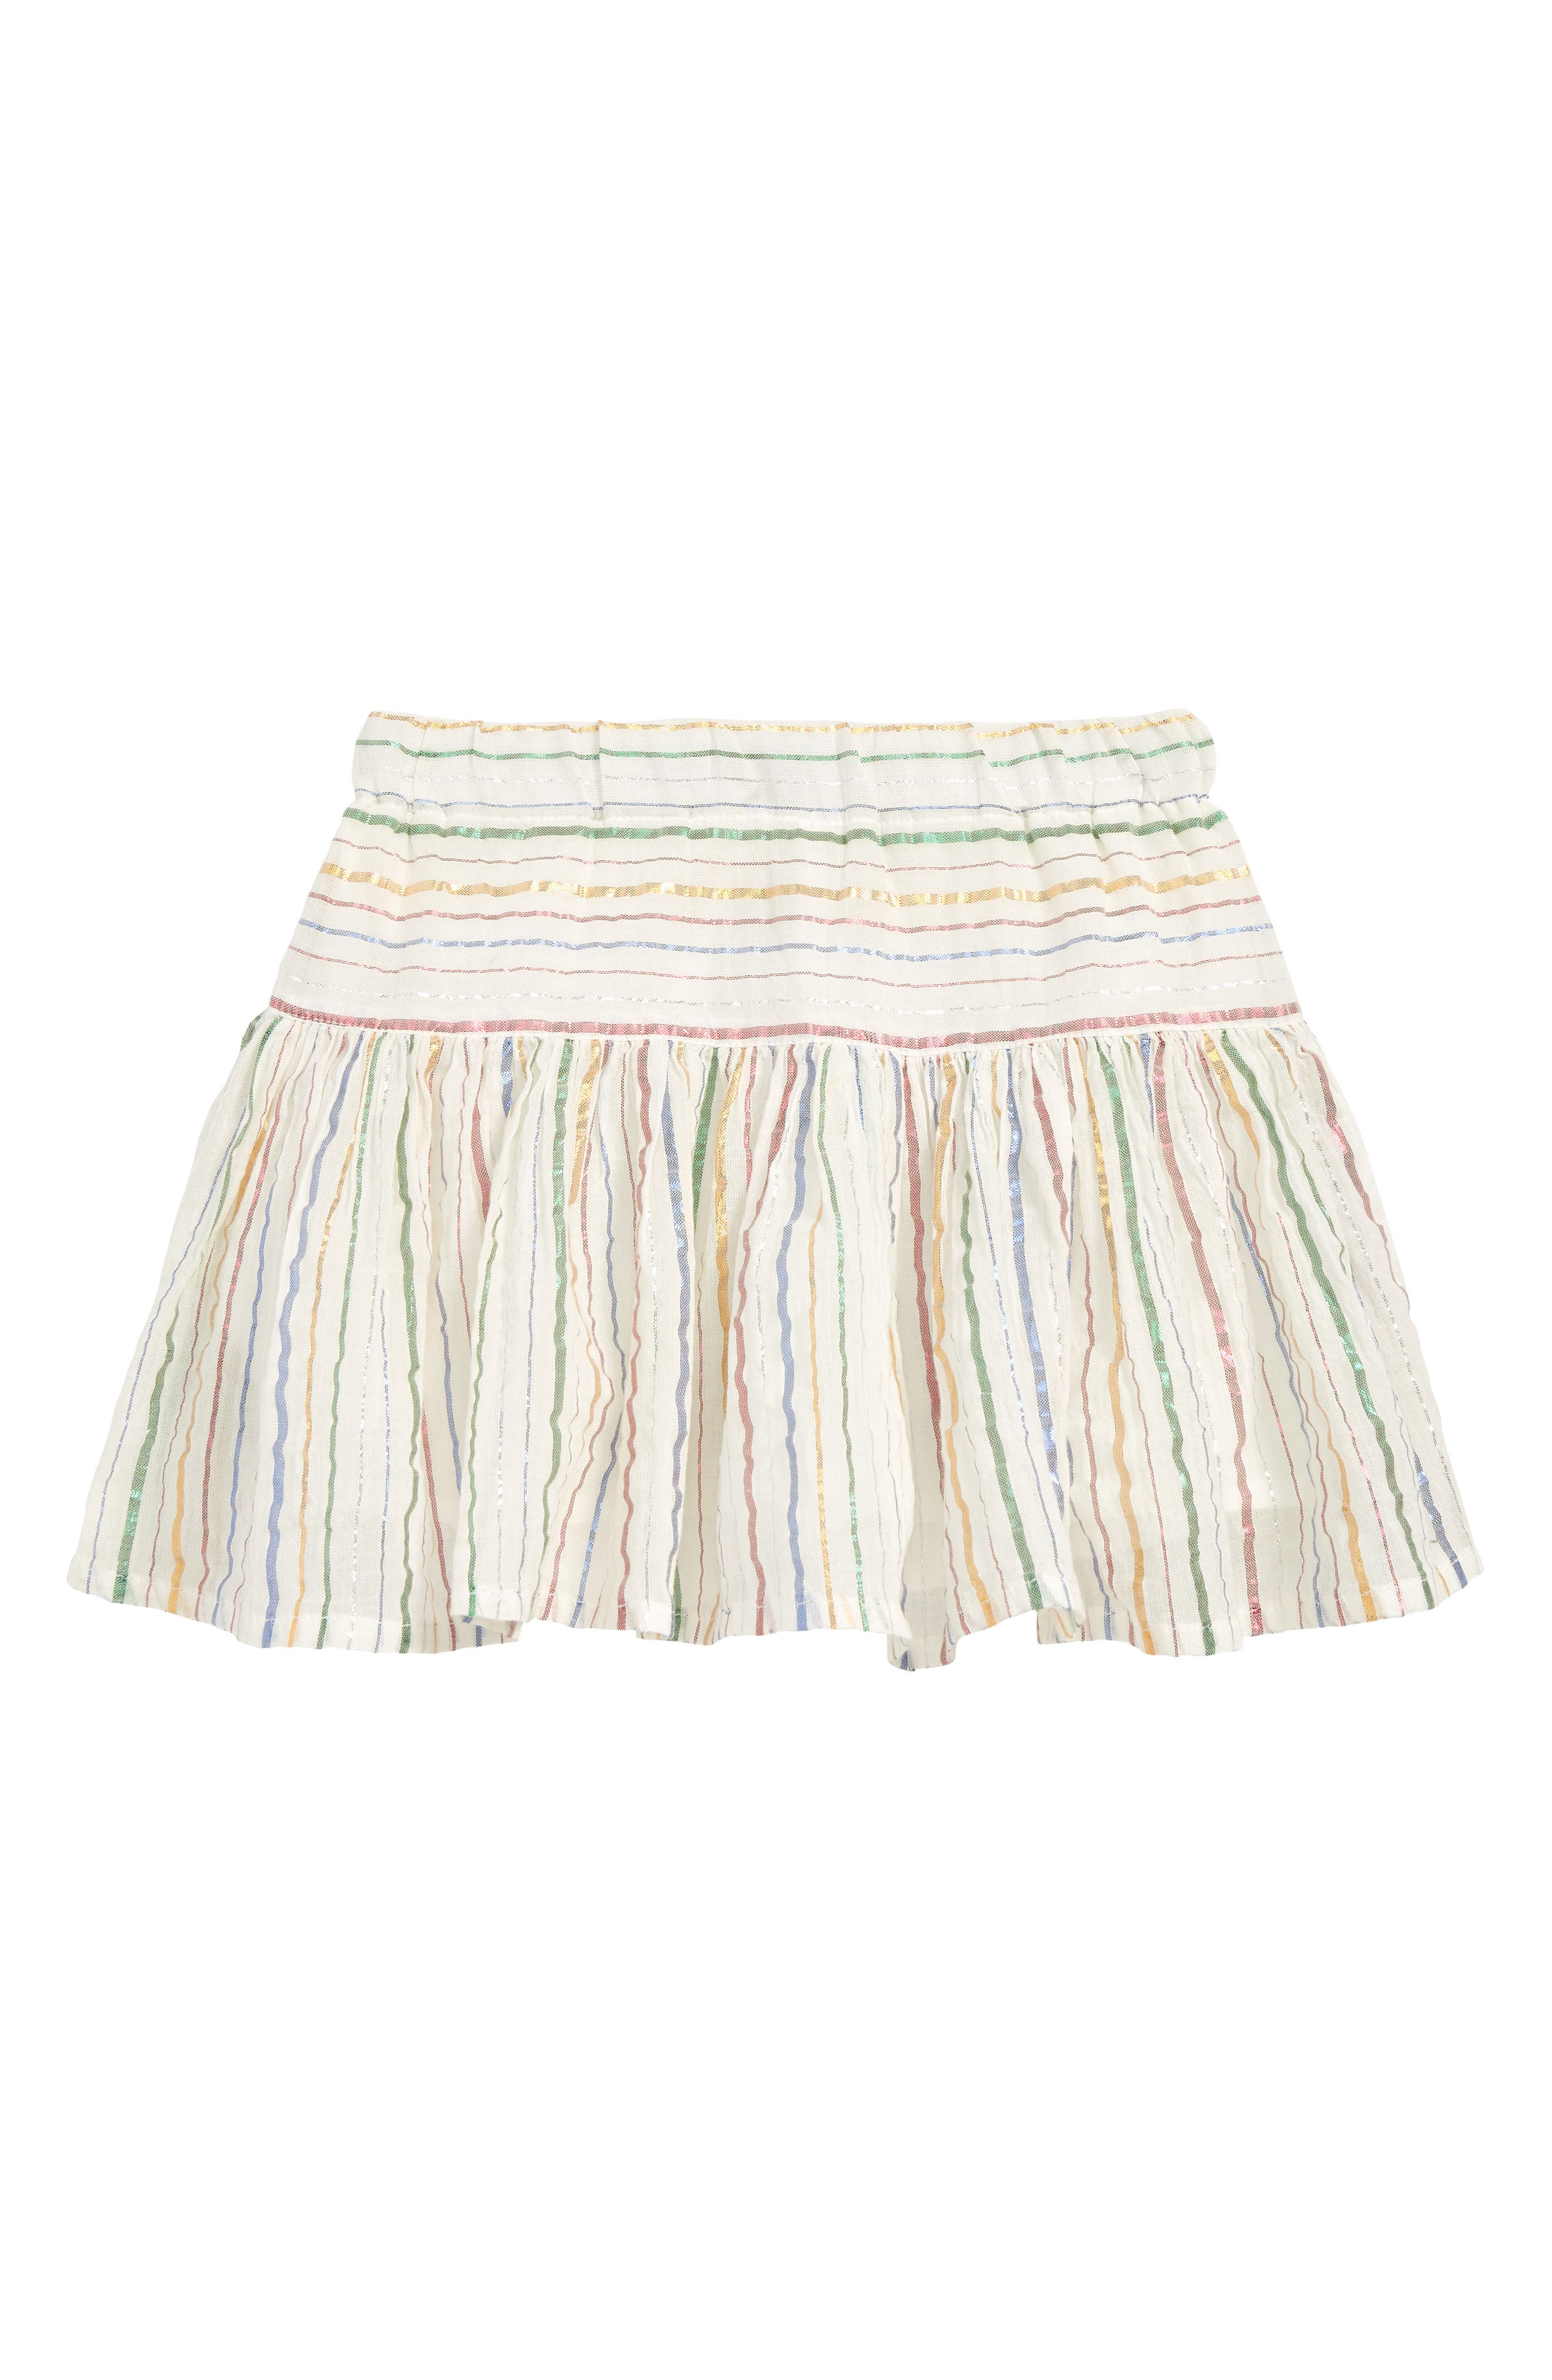 PEEK AREN'T YOU CURIOUS, Nora Stripe Skirt, Main thumbnail 1, color, IVORY